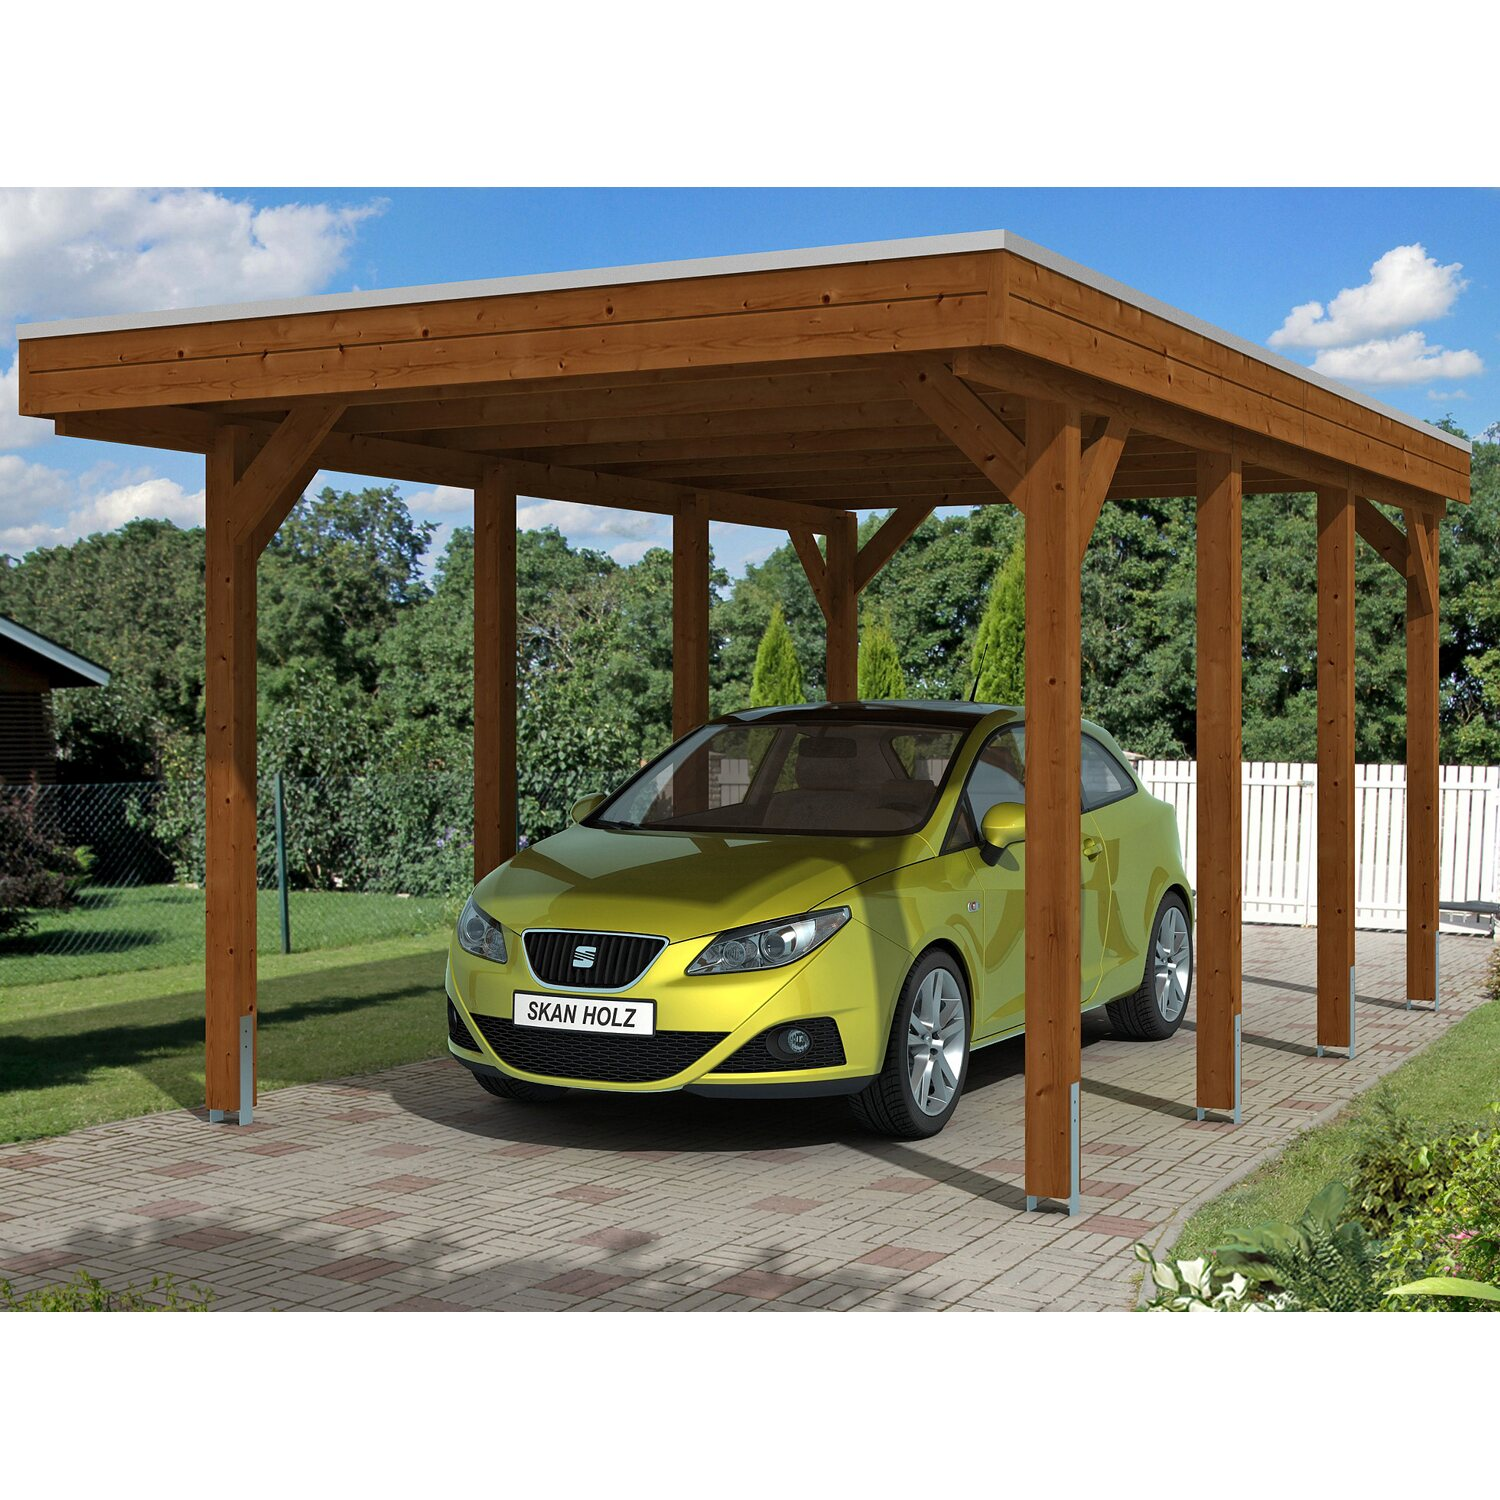 skan holz carport friesland 314 cm x 555 cm nussbaum moebel suchmaschine. Black Bedroom Furniture Sets. Home Design Ideas